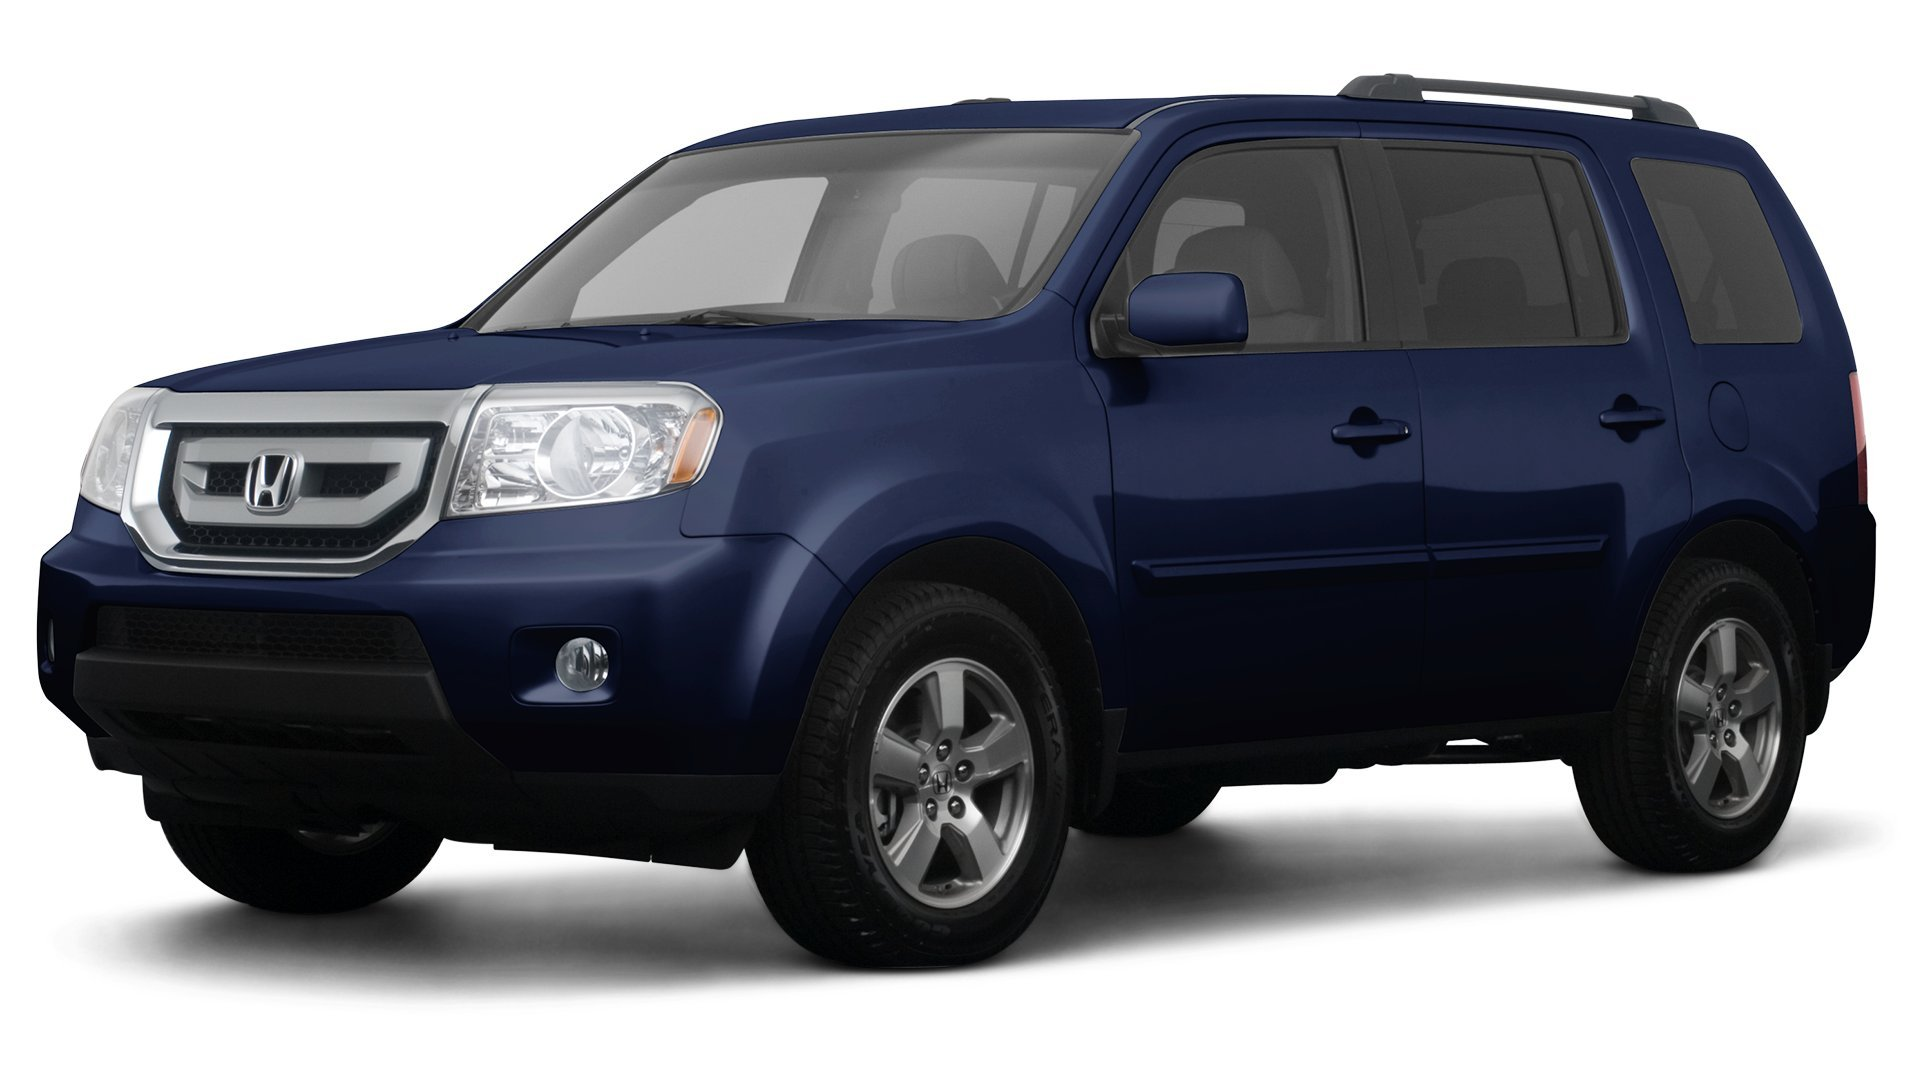 2009 honda pilot reviews images and specs vehicles. Black Bedroom Furniture Sets. Home Design Ideas